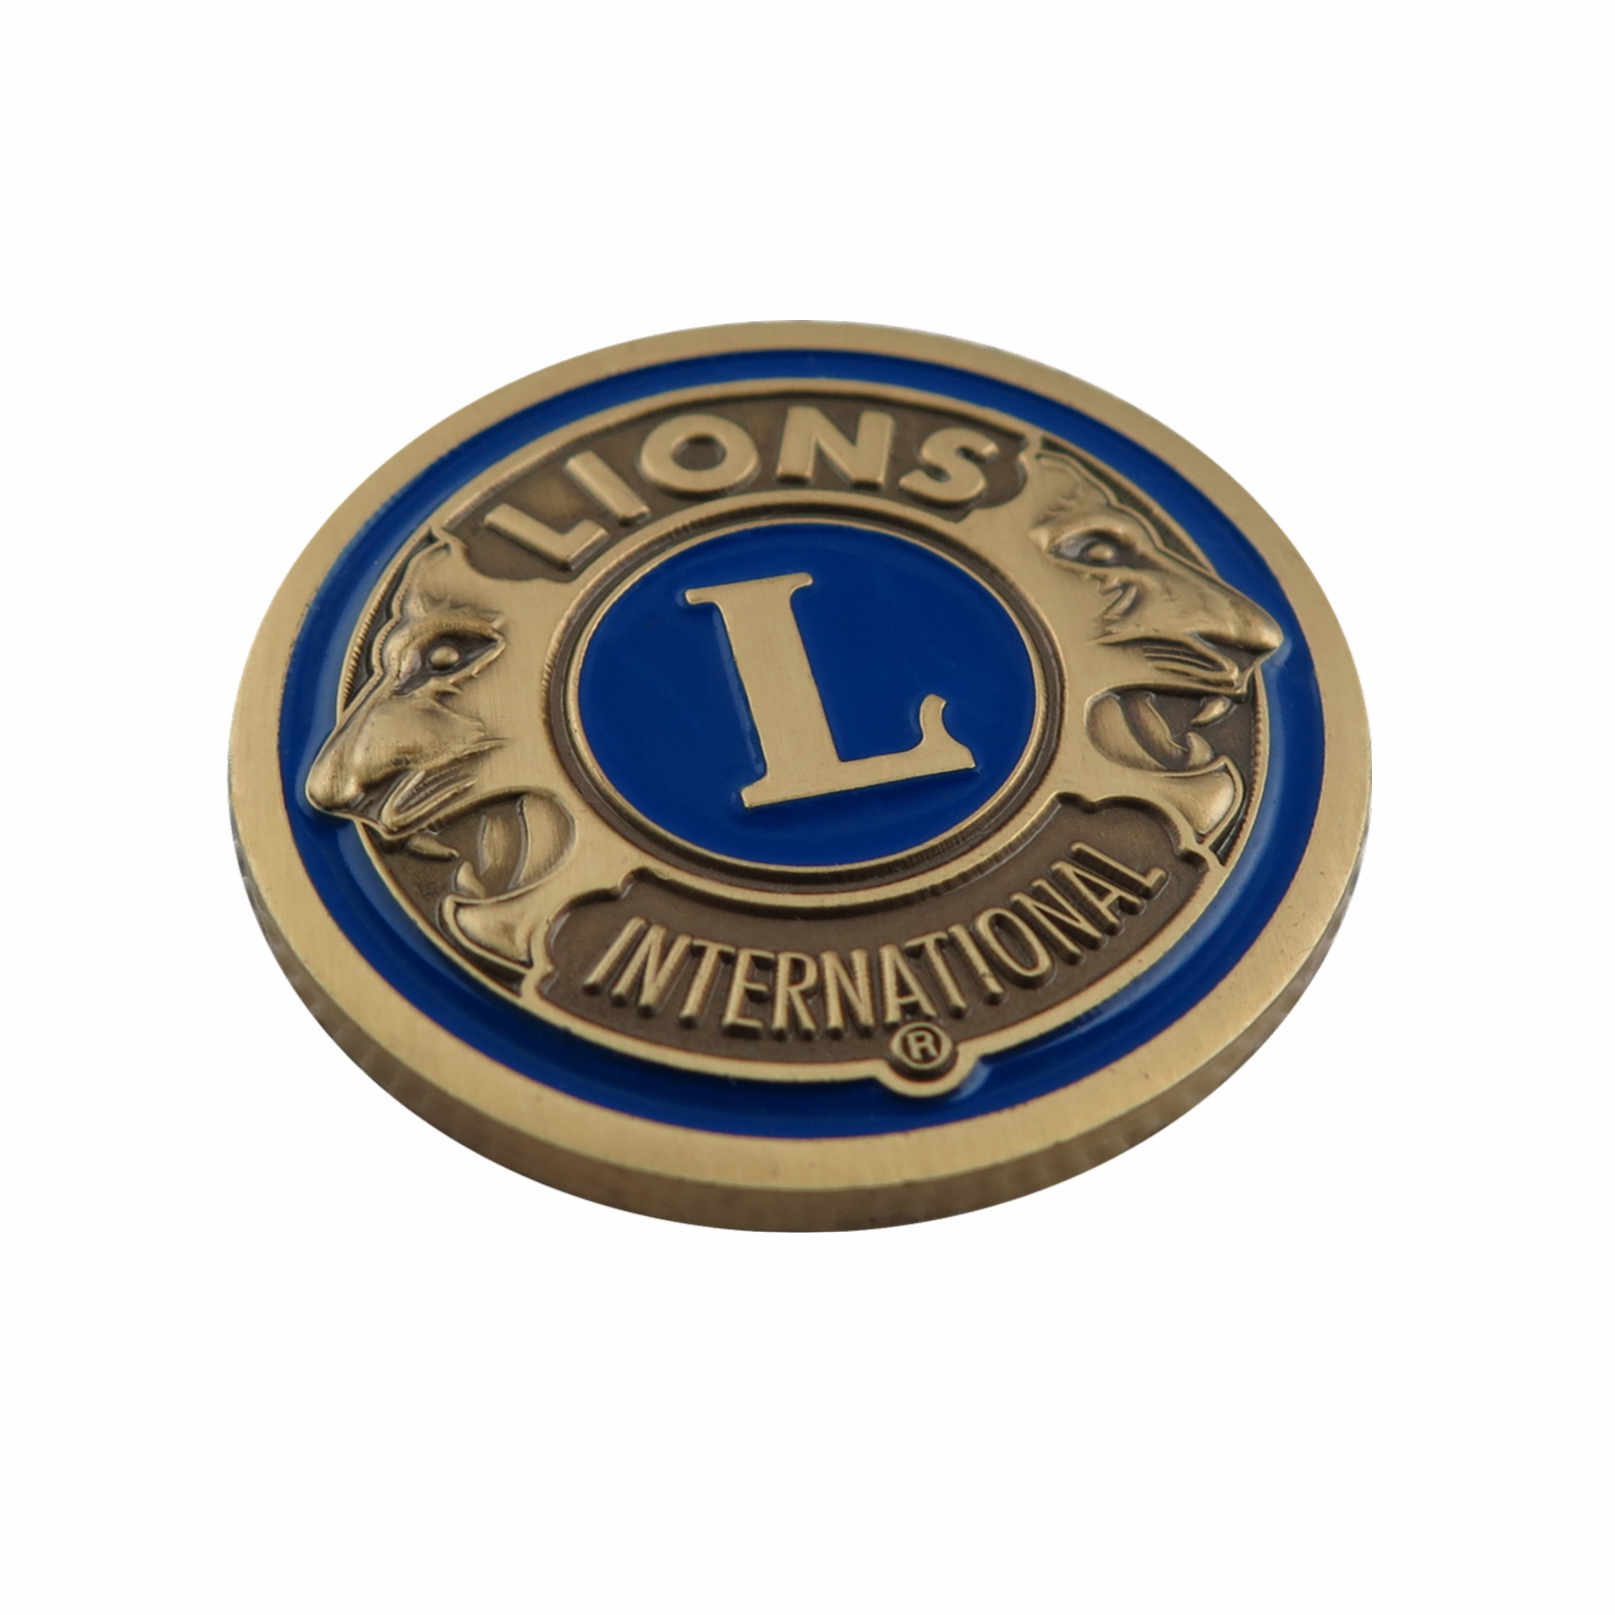 Lions Club Commemorative Coin